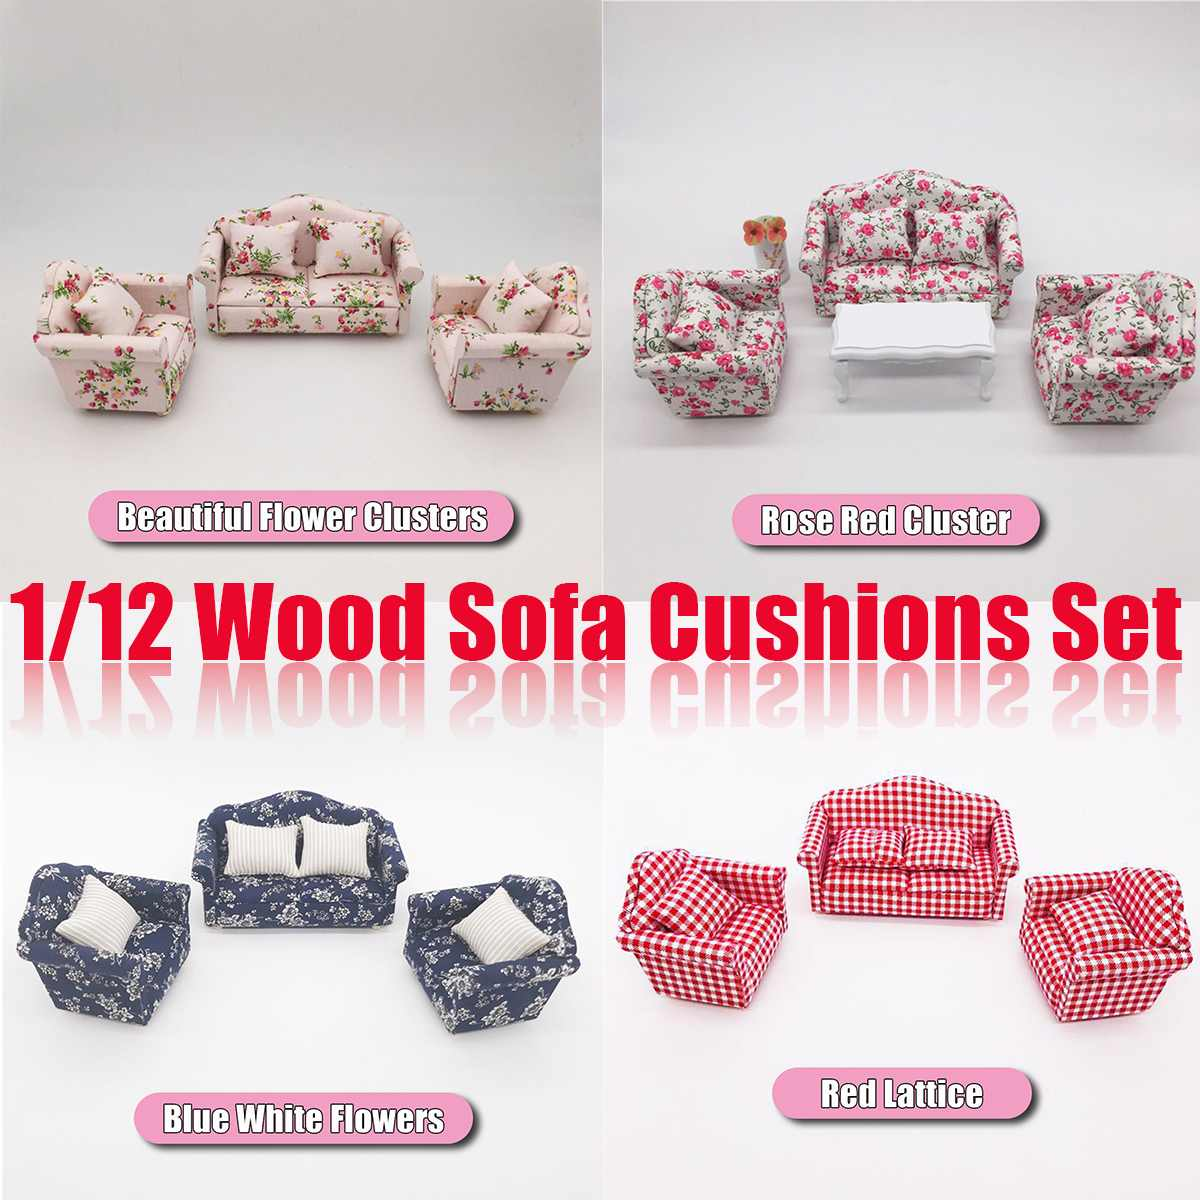 1/12 <font><b>Dollhouse</b></font> <font><b>Miniature</b></font> Accessories Mini Wooden Cloth Sofa Set with Pillow Simulation Furniture Toys for Doll House Decoration image